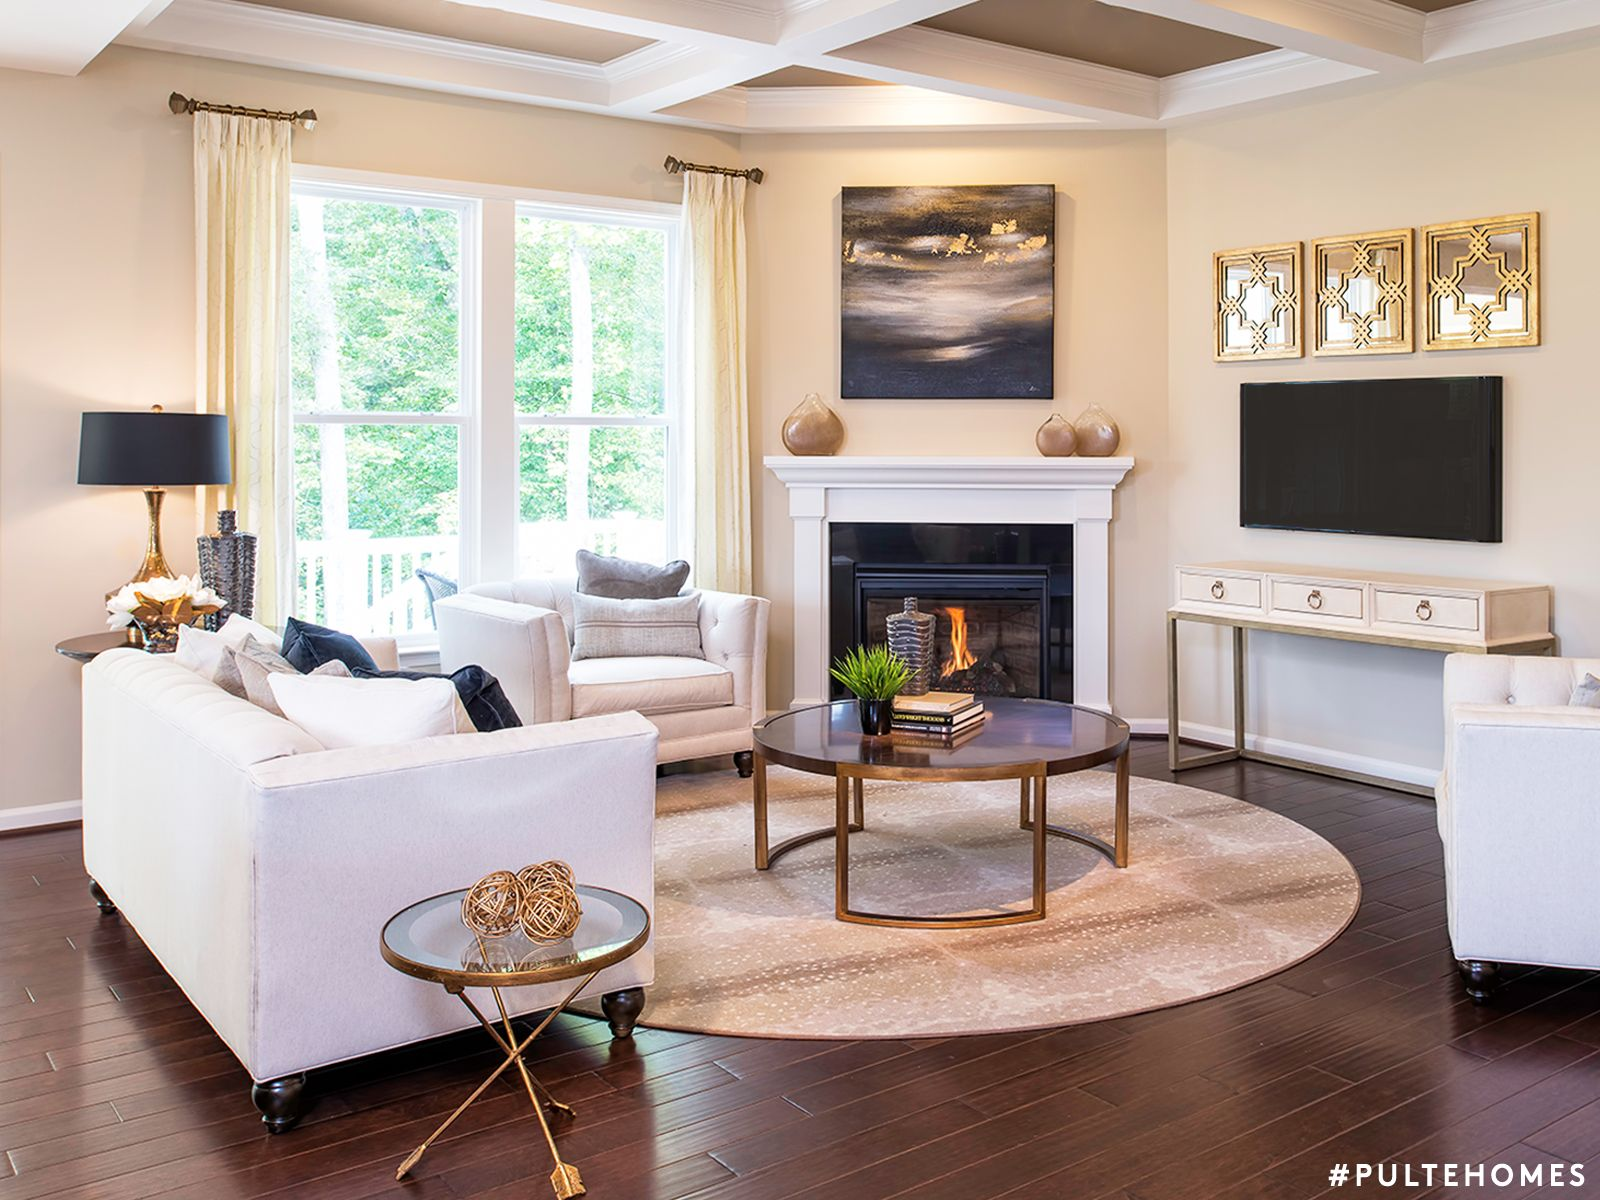 A room with style to go around a circular table paired